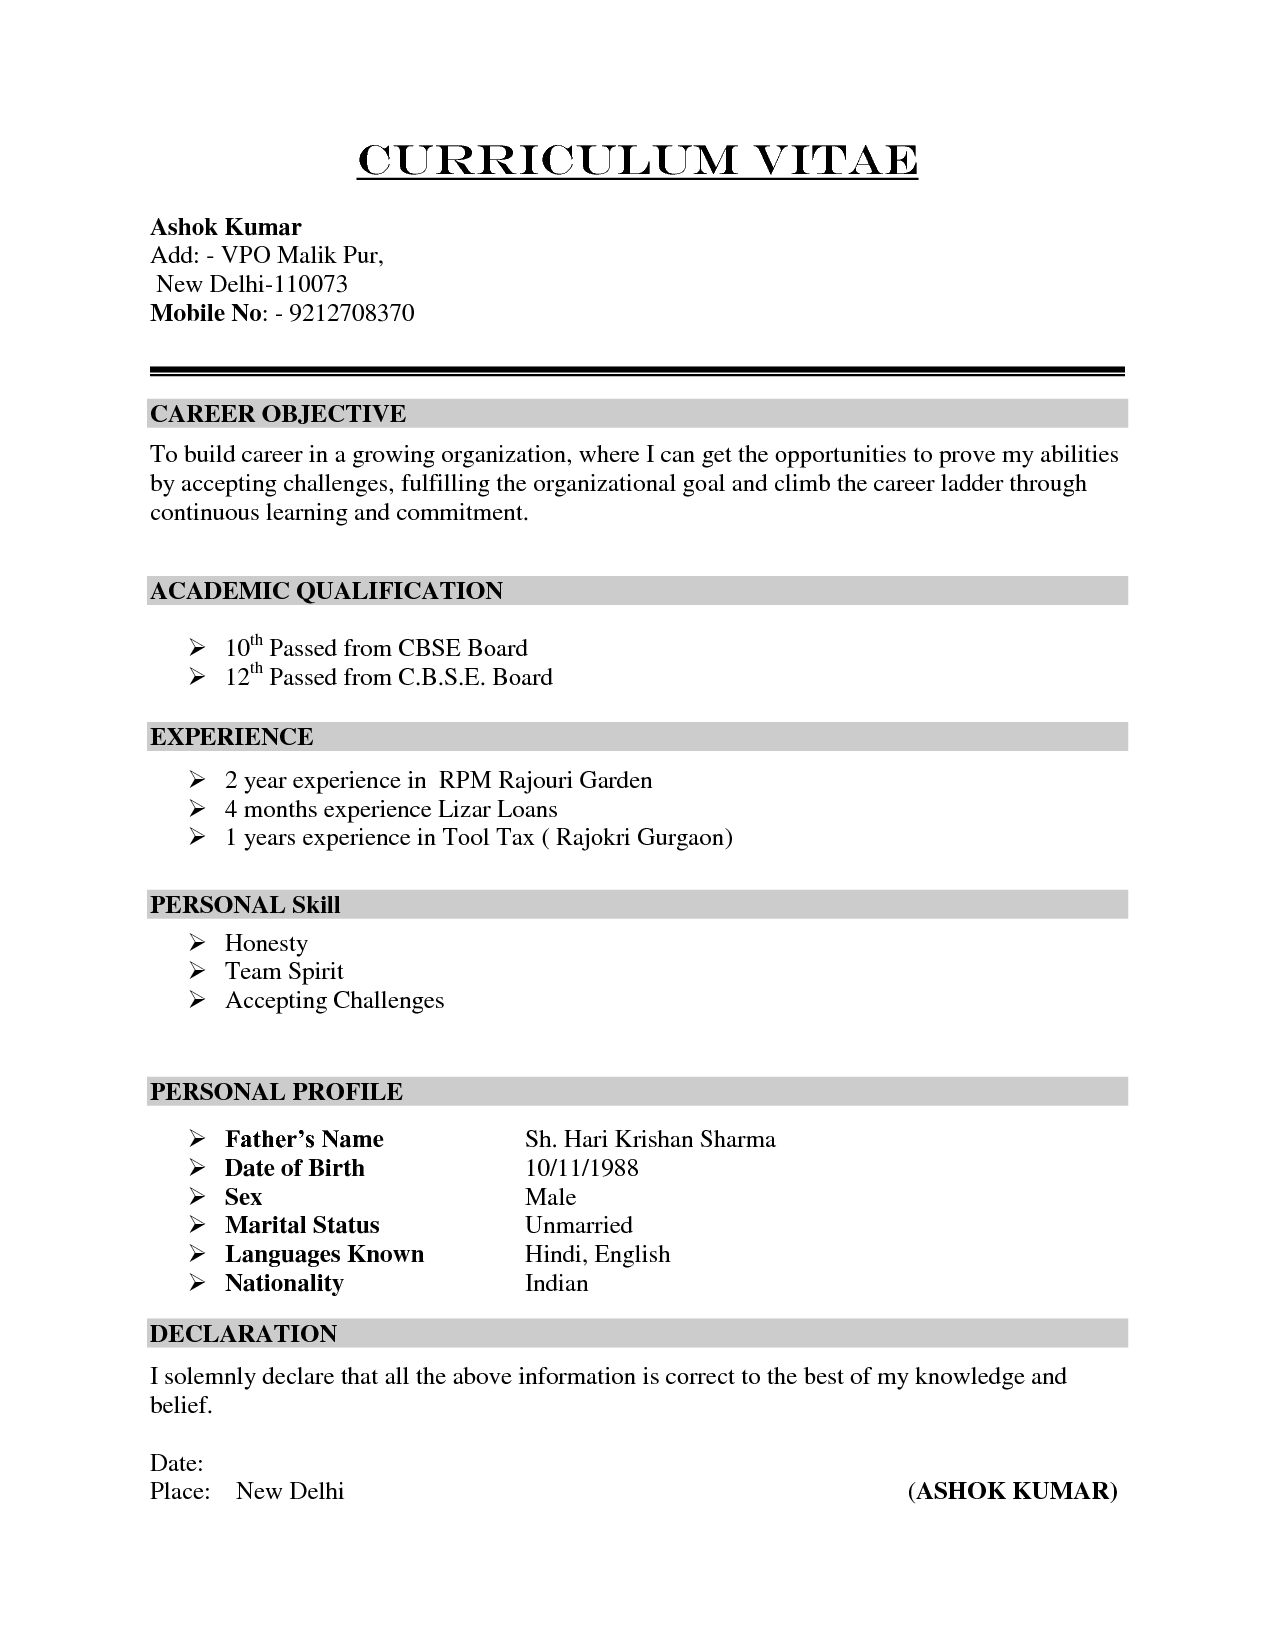 cv samples yahoo image search results resume for job application sample - Cvs Resume Example